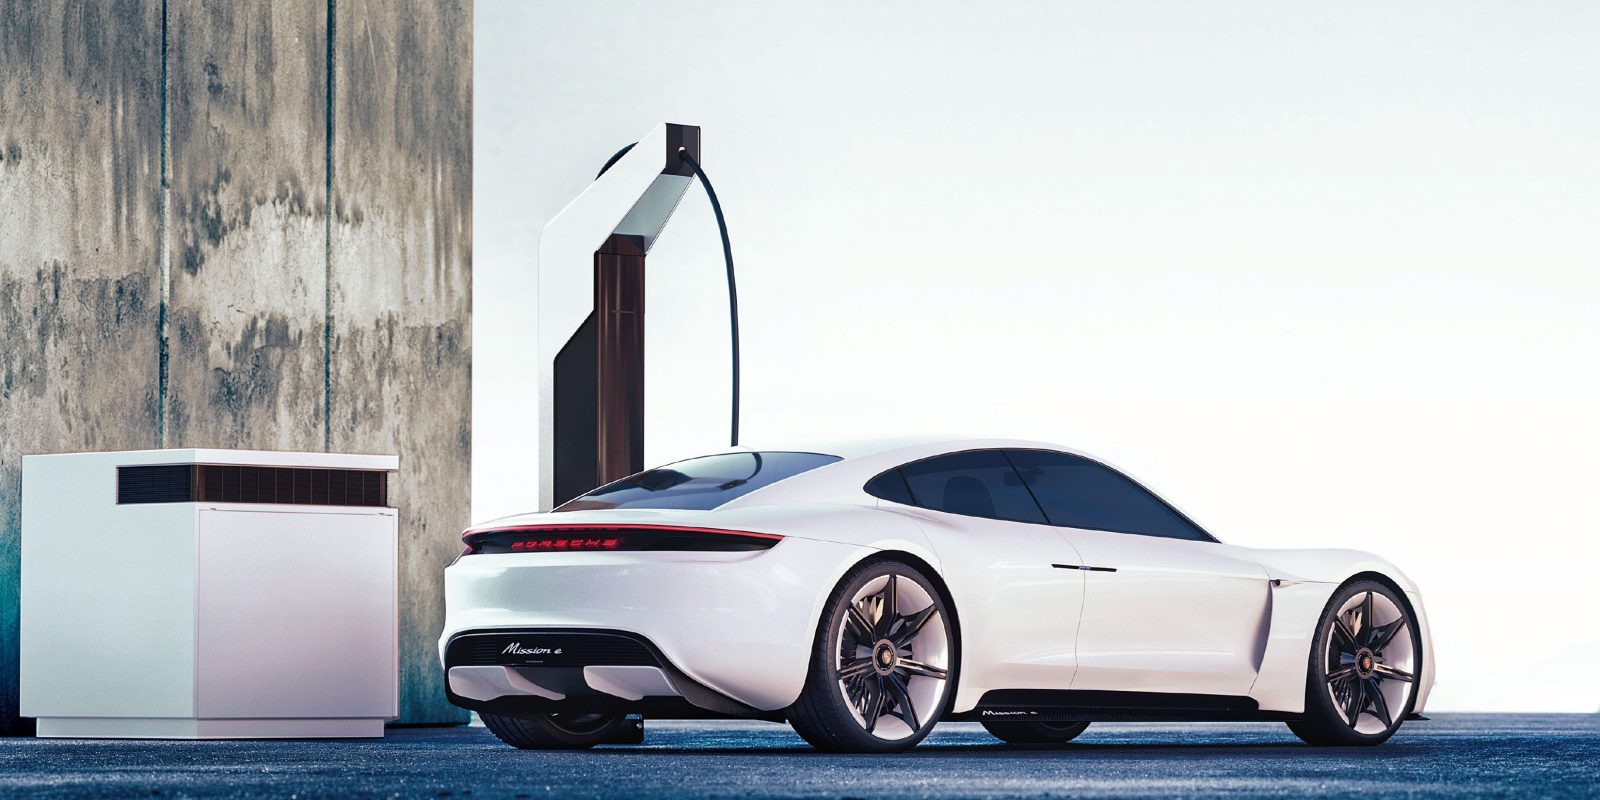 Porsche unveils its plan for electric vehicle fast-charging stations: Electric pit stop